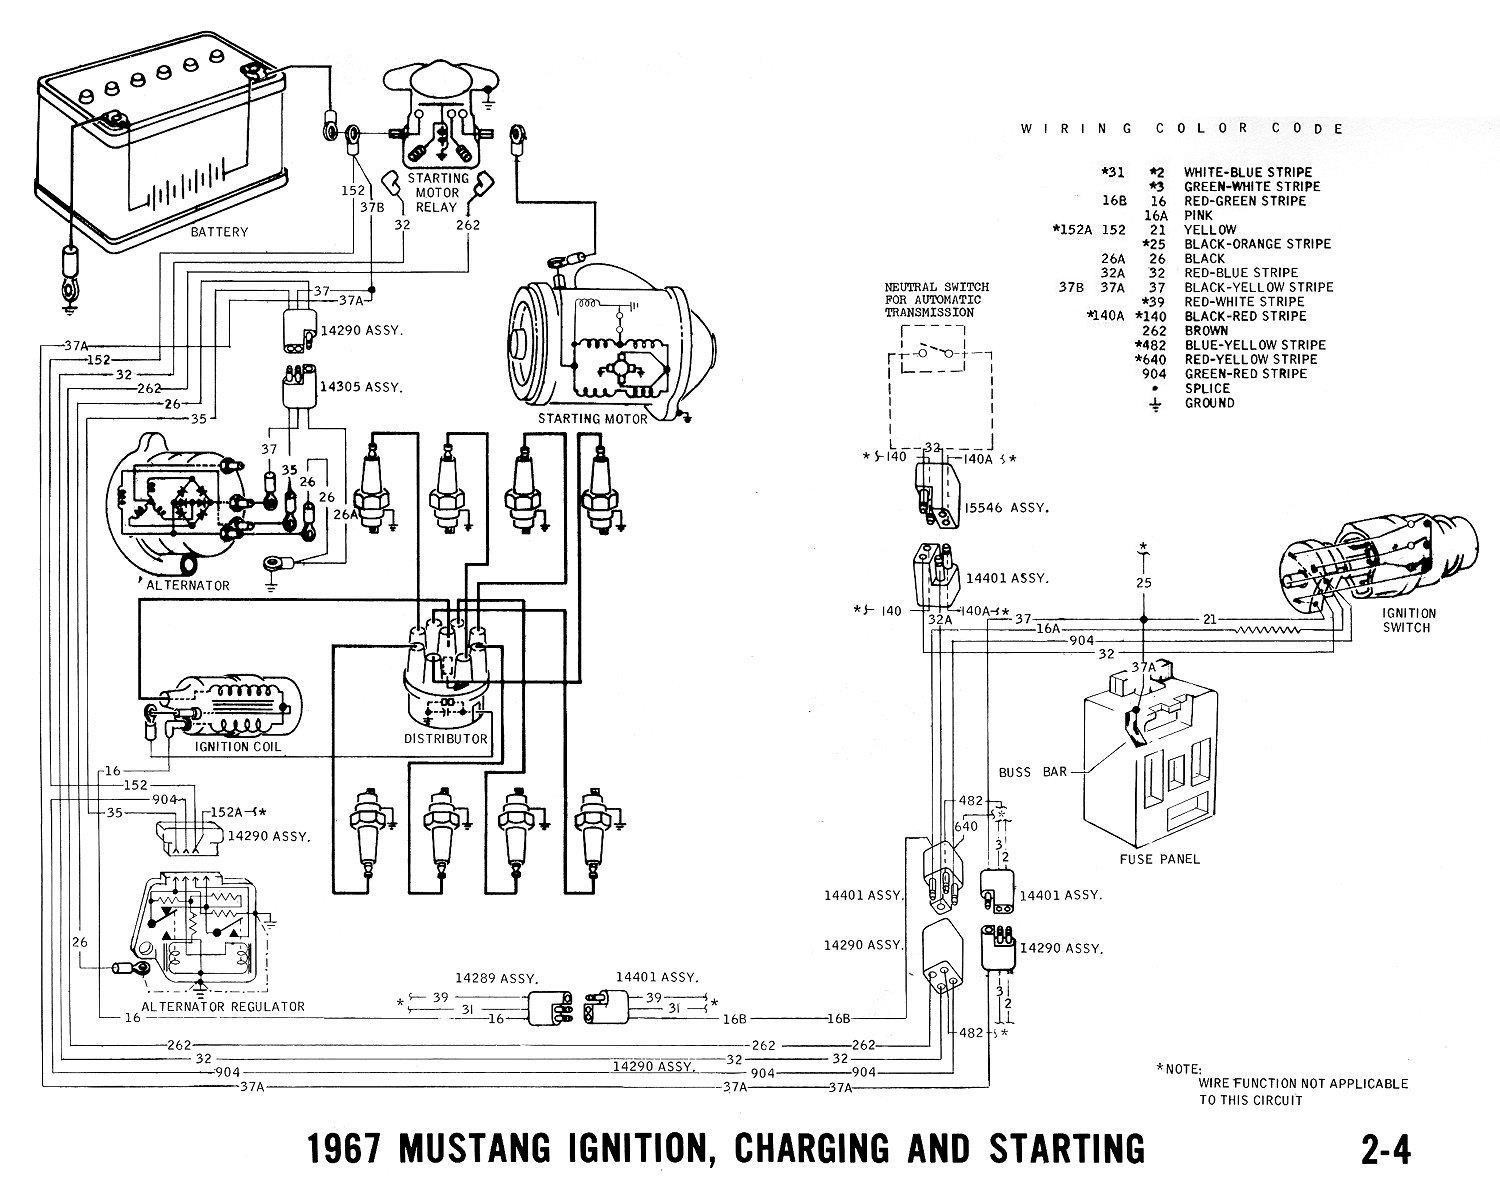 1967 Ford Mustang Dash Wiring | Wiring Diagram  Mustang Wiring Schematic Charging Circuit on 1971 mustang wiring schematic, 2001 mustang wiring schematic, 1965 mustang steering schematic, 1964 mustang wiring schematic, 2005 mustang wiring schematic, 1967 mustang wiring schematic, 1968 mustang wiring schematic, 1957 chevrolet truck wiring schematic, 1967 gto wiring schematic, 2000 mustang wiring schematic, ford wiring schematic, 2006 mustang wiring schematic, 1967 camaro wiring schematic, 1966 mustang wiring schematic, 1970 mustang wiring schematic, 2008 mustang wiring schematic, 66 mustang wiring schematic, 65 mustang wiring schematic, 1969 camaro wiring schematic, 2002 mustang wiring schematic,